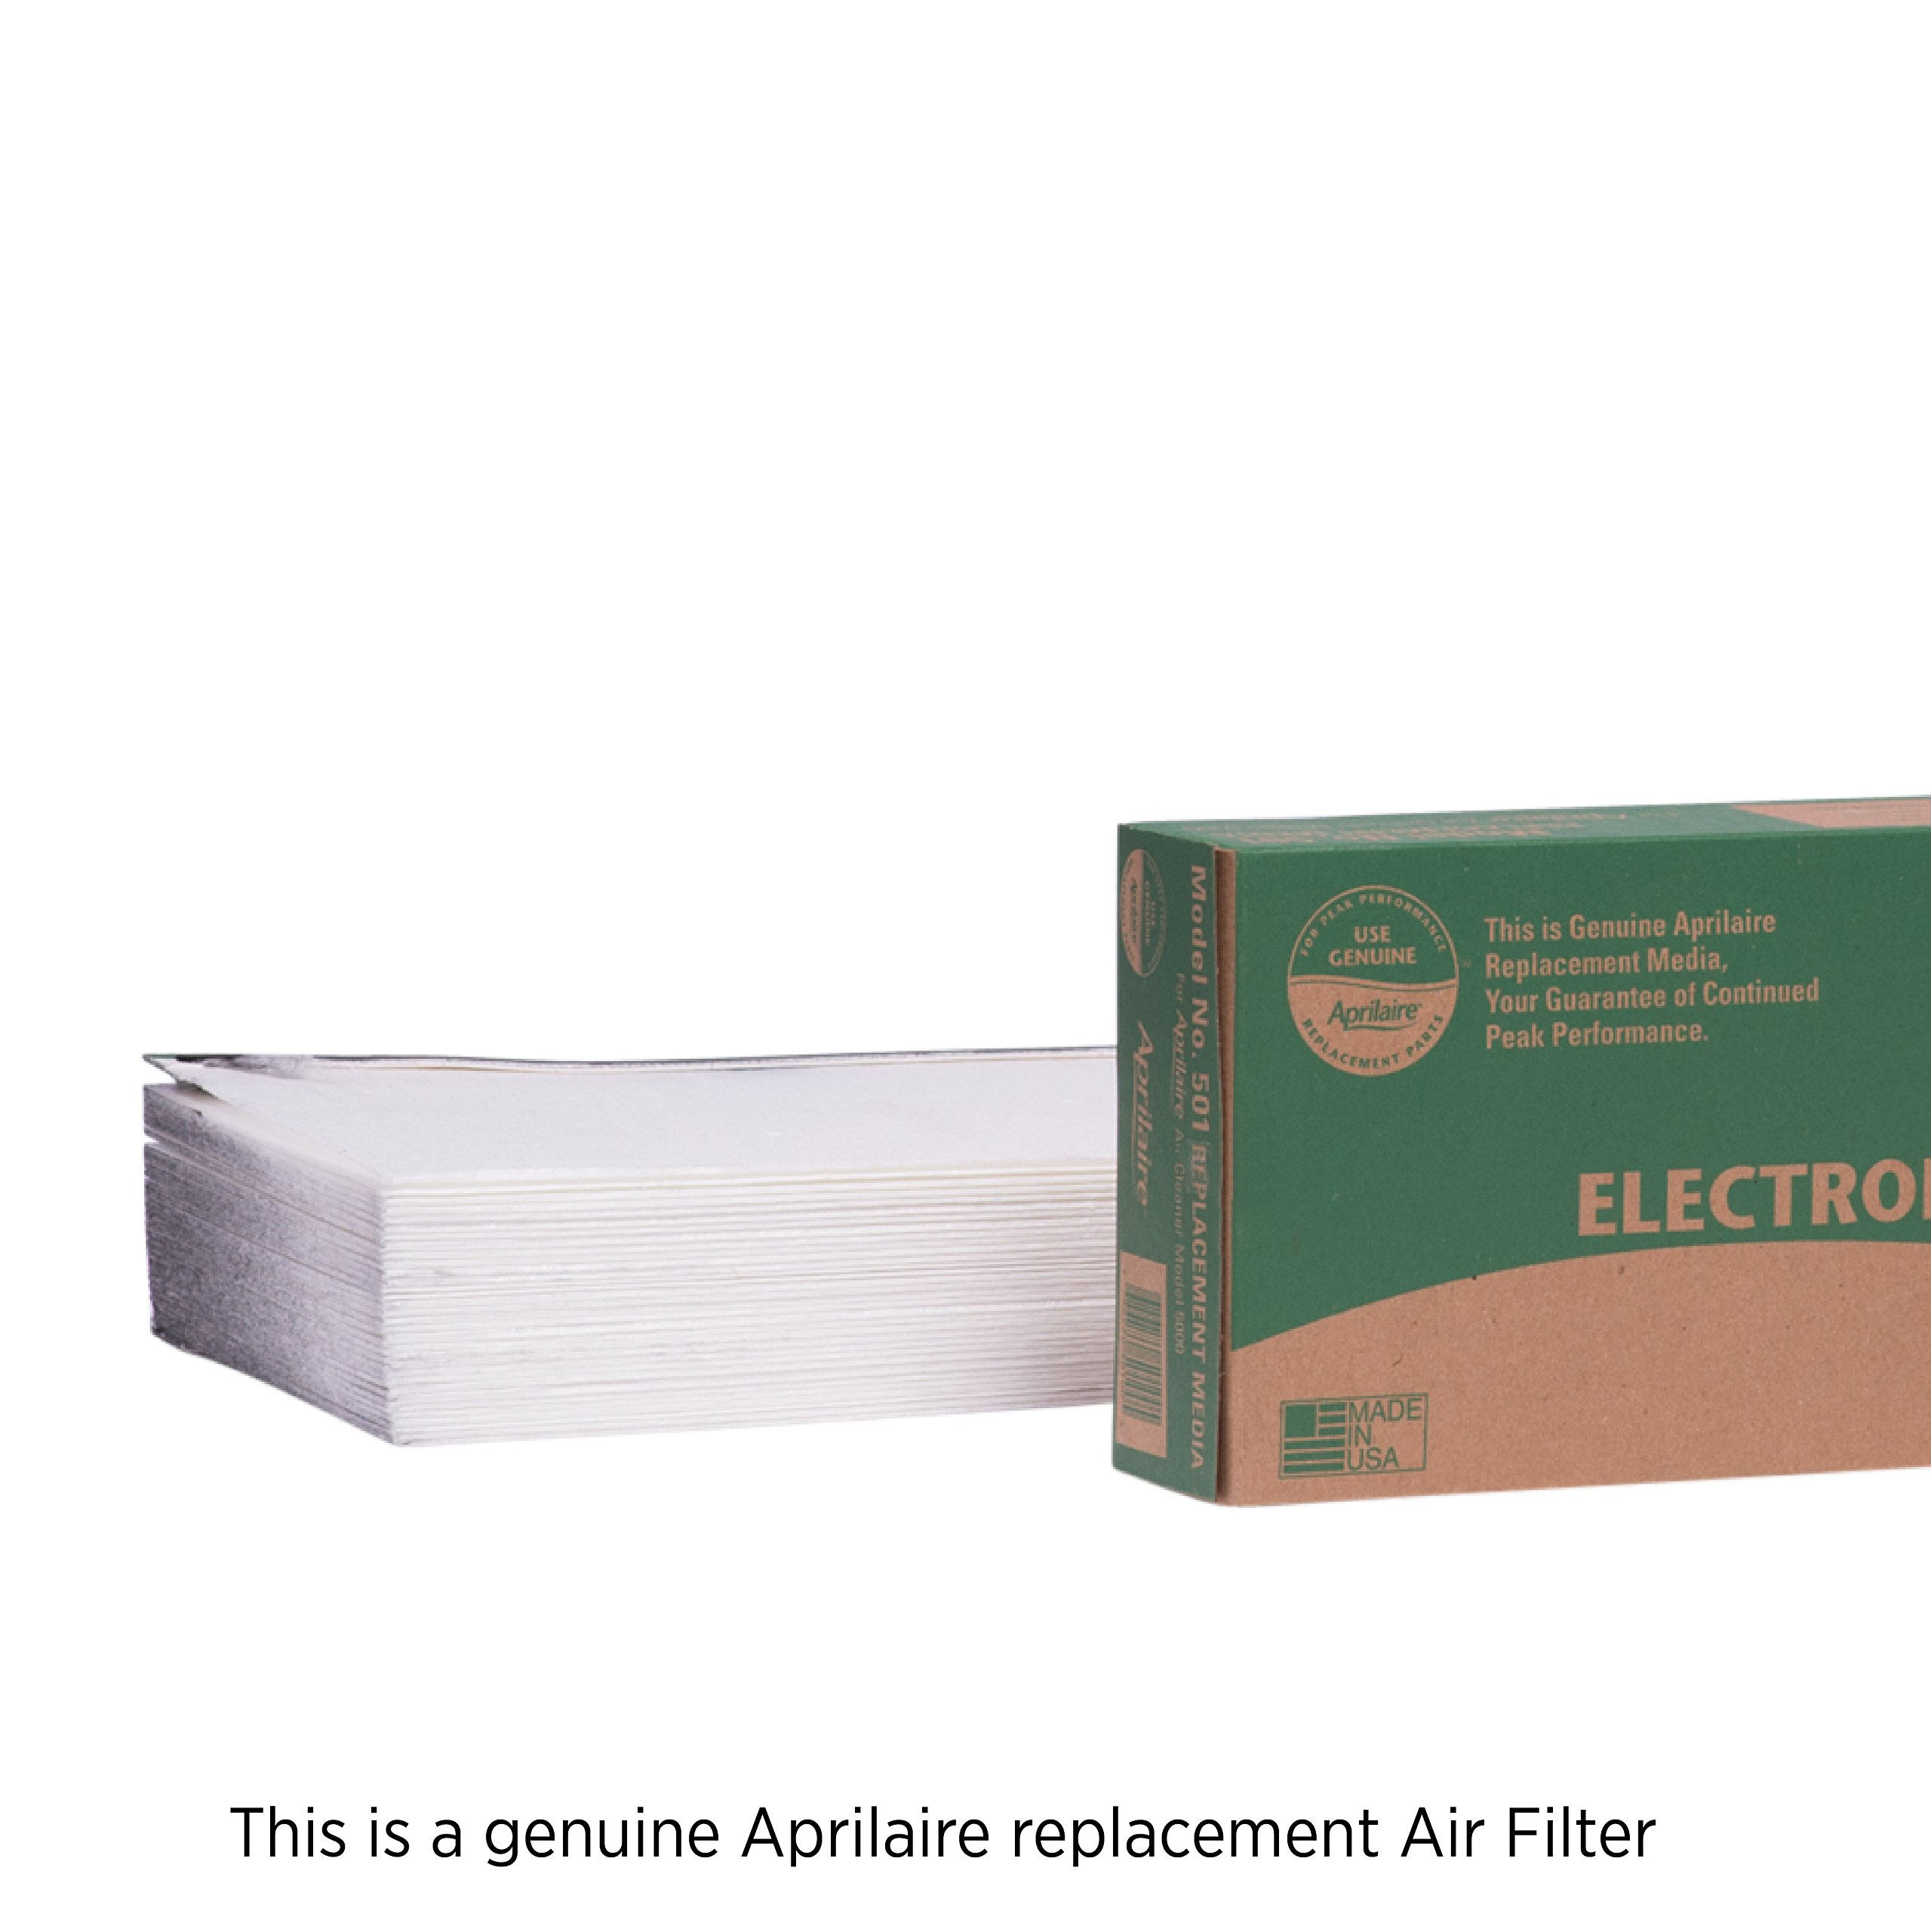 Aprilaire 501 Air Filter for Aprilaire Whole Home Electronic Air Purifier Model: 5000, MERV 16 (Pack of 1)